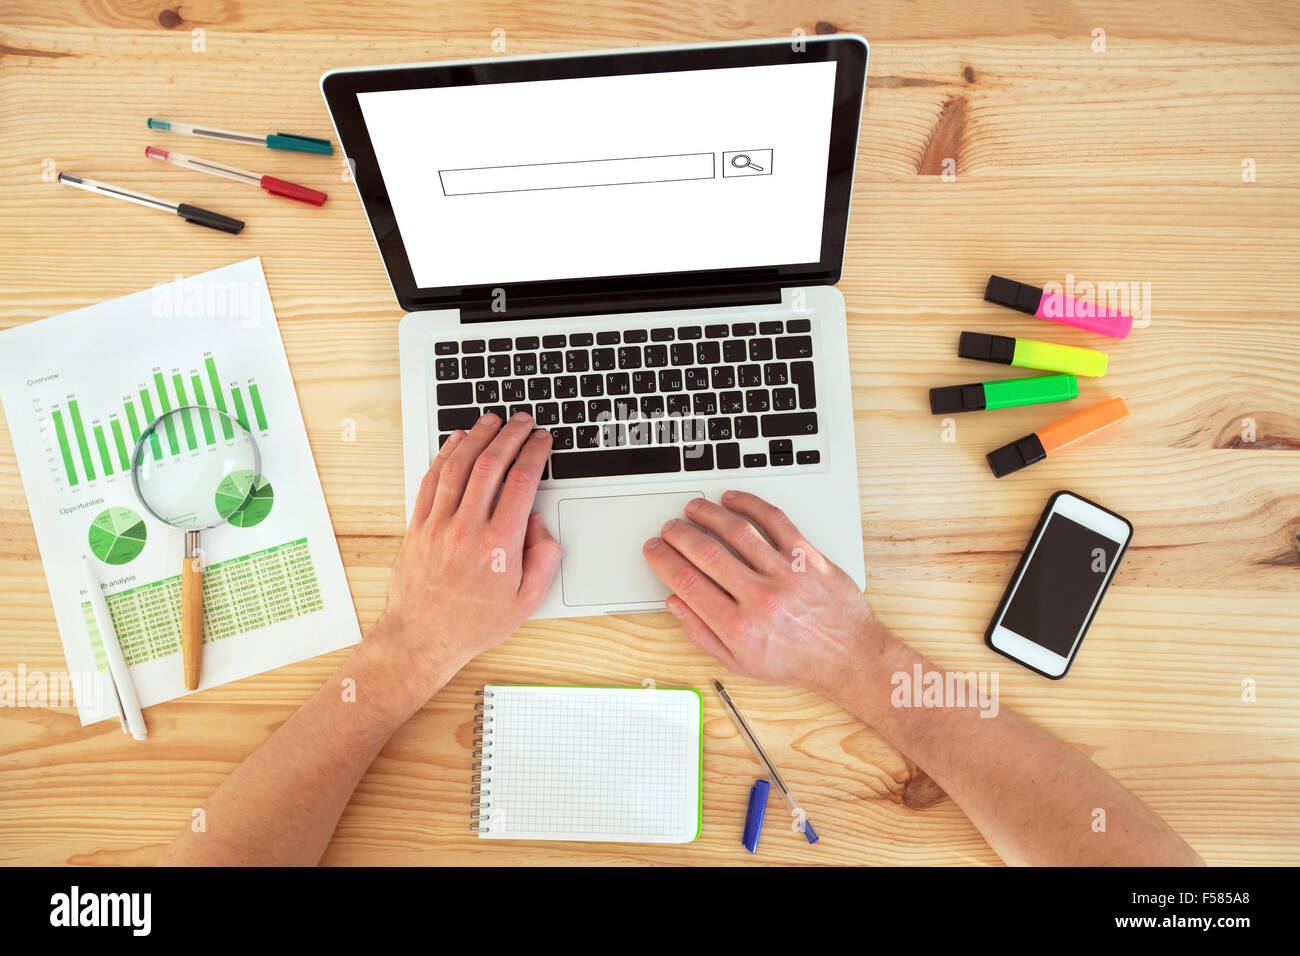 business plan and market research Stock Photo